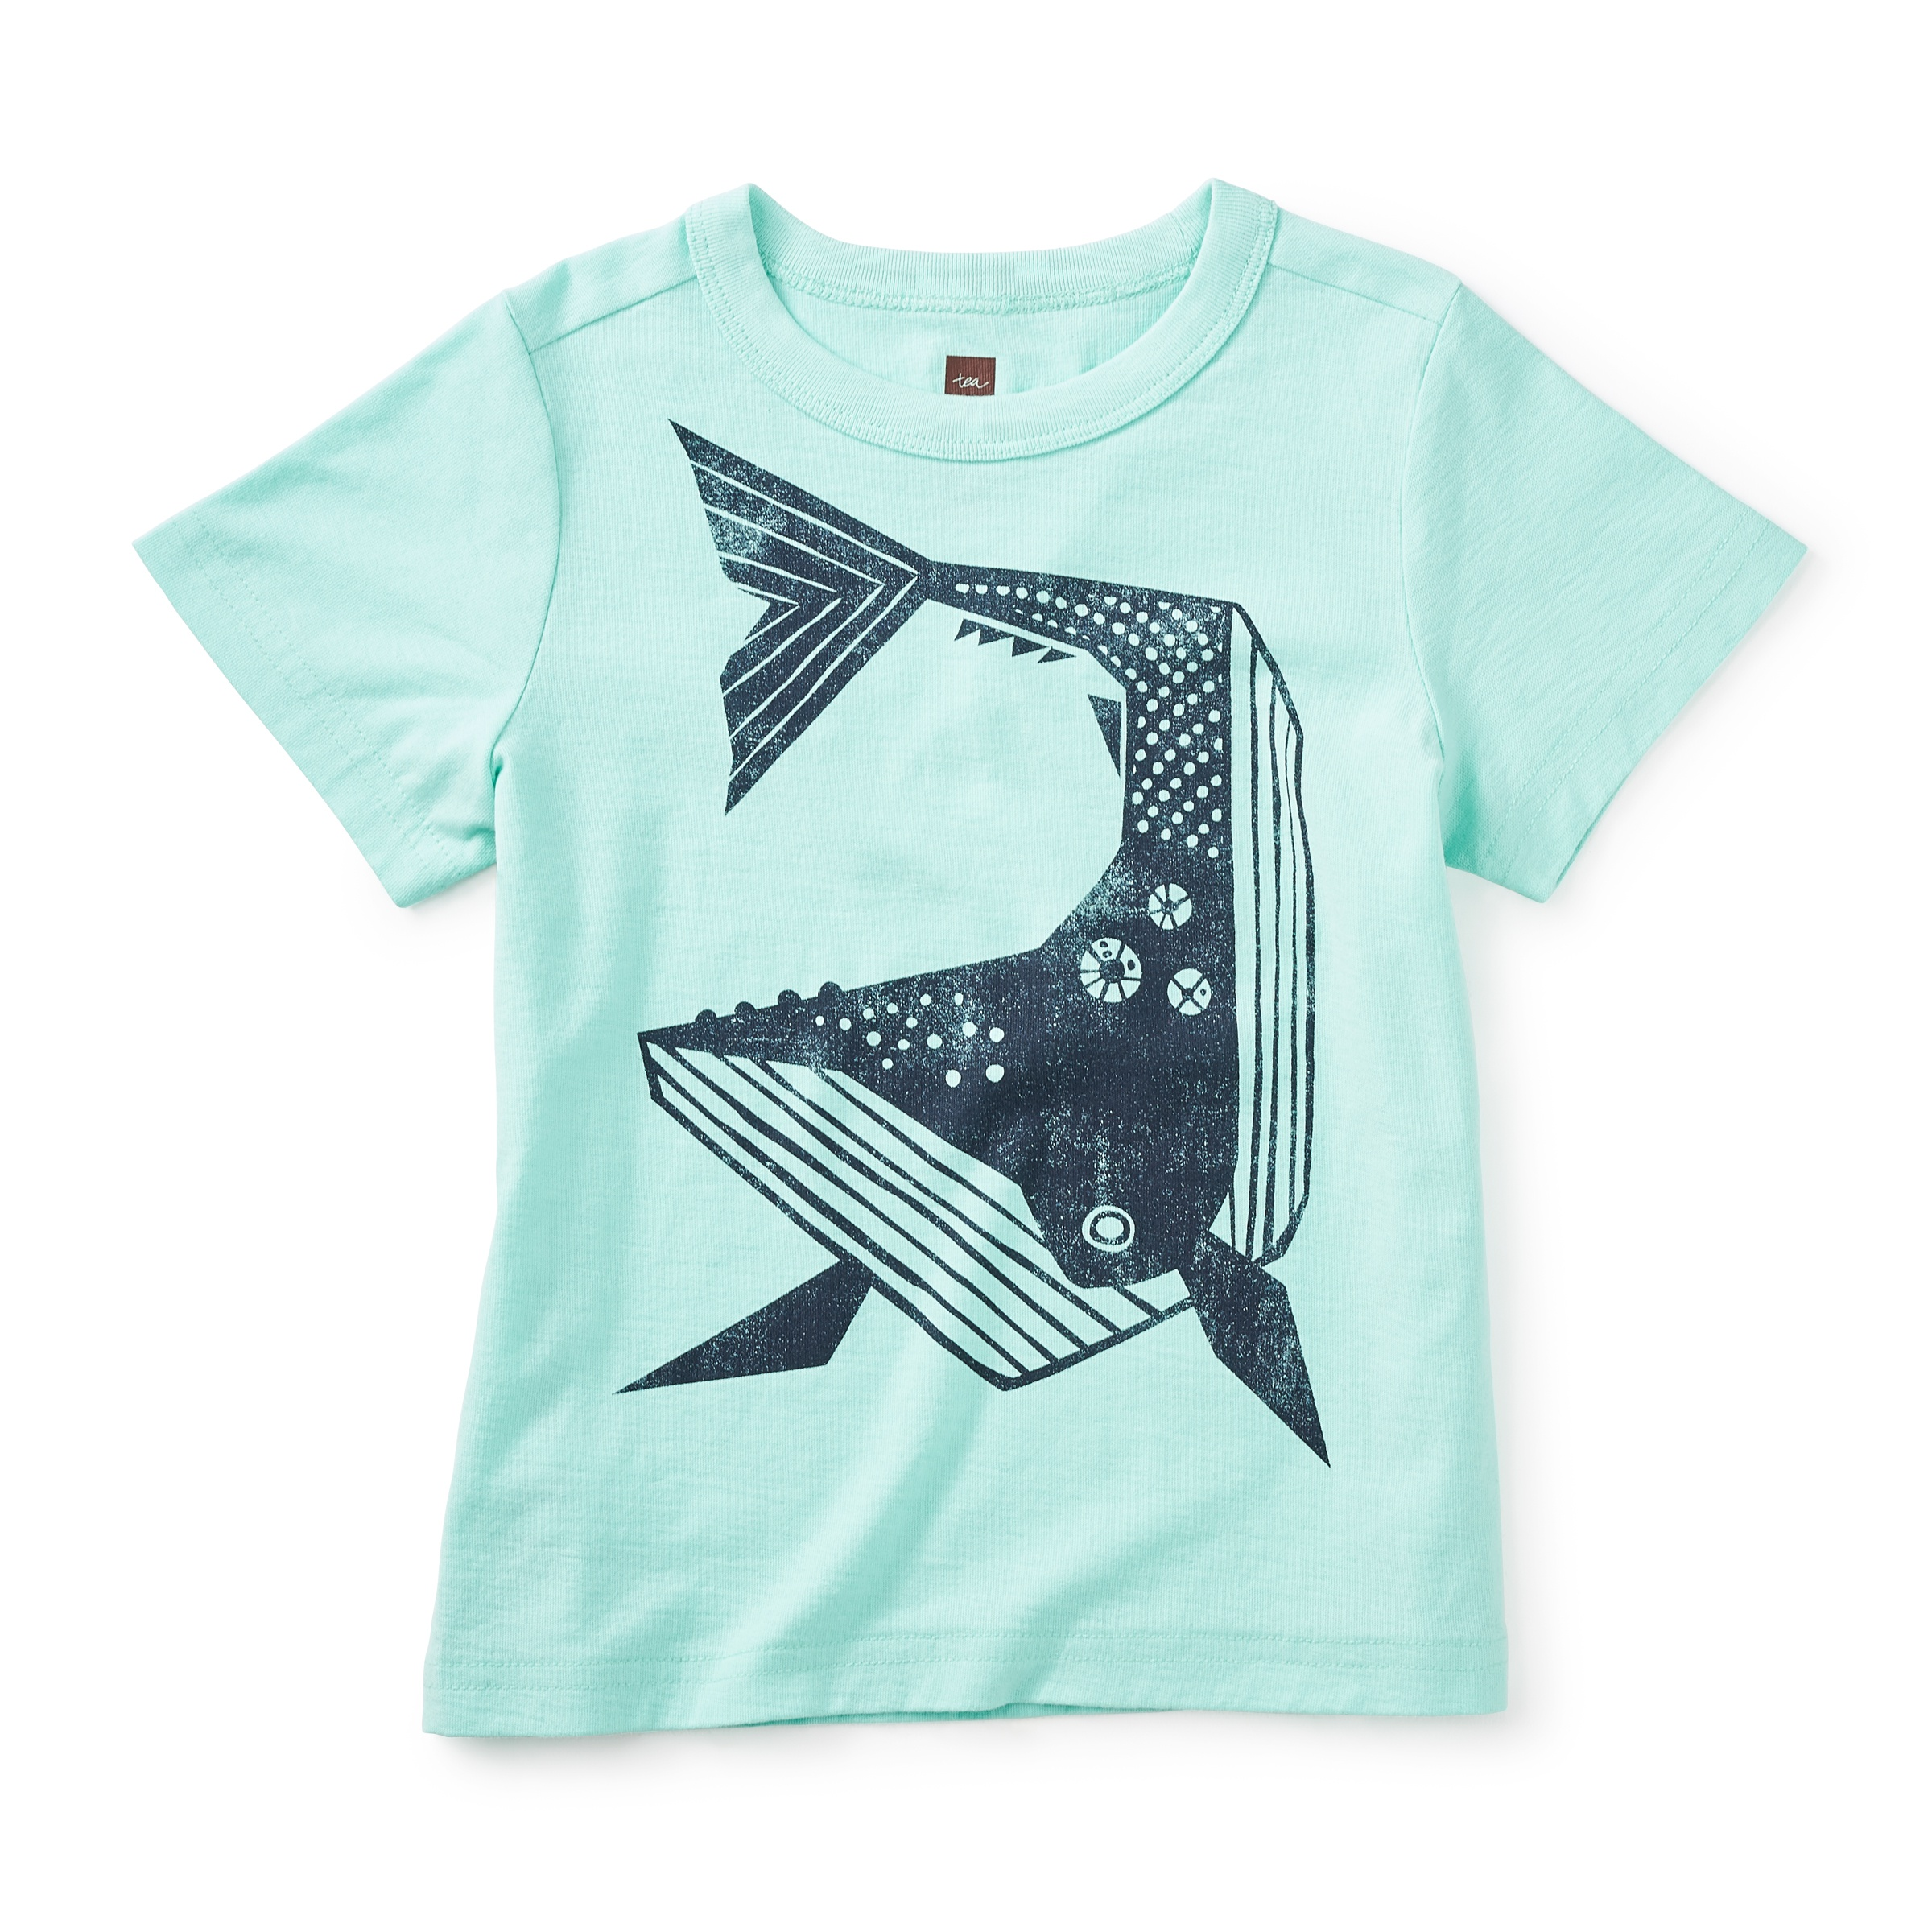 Show off your sass in retro graphic tees and tanks at deletzloads.tk! Our printed tees will help you make a statement.